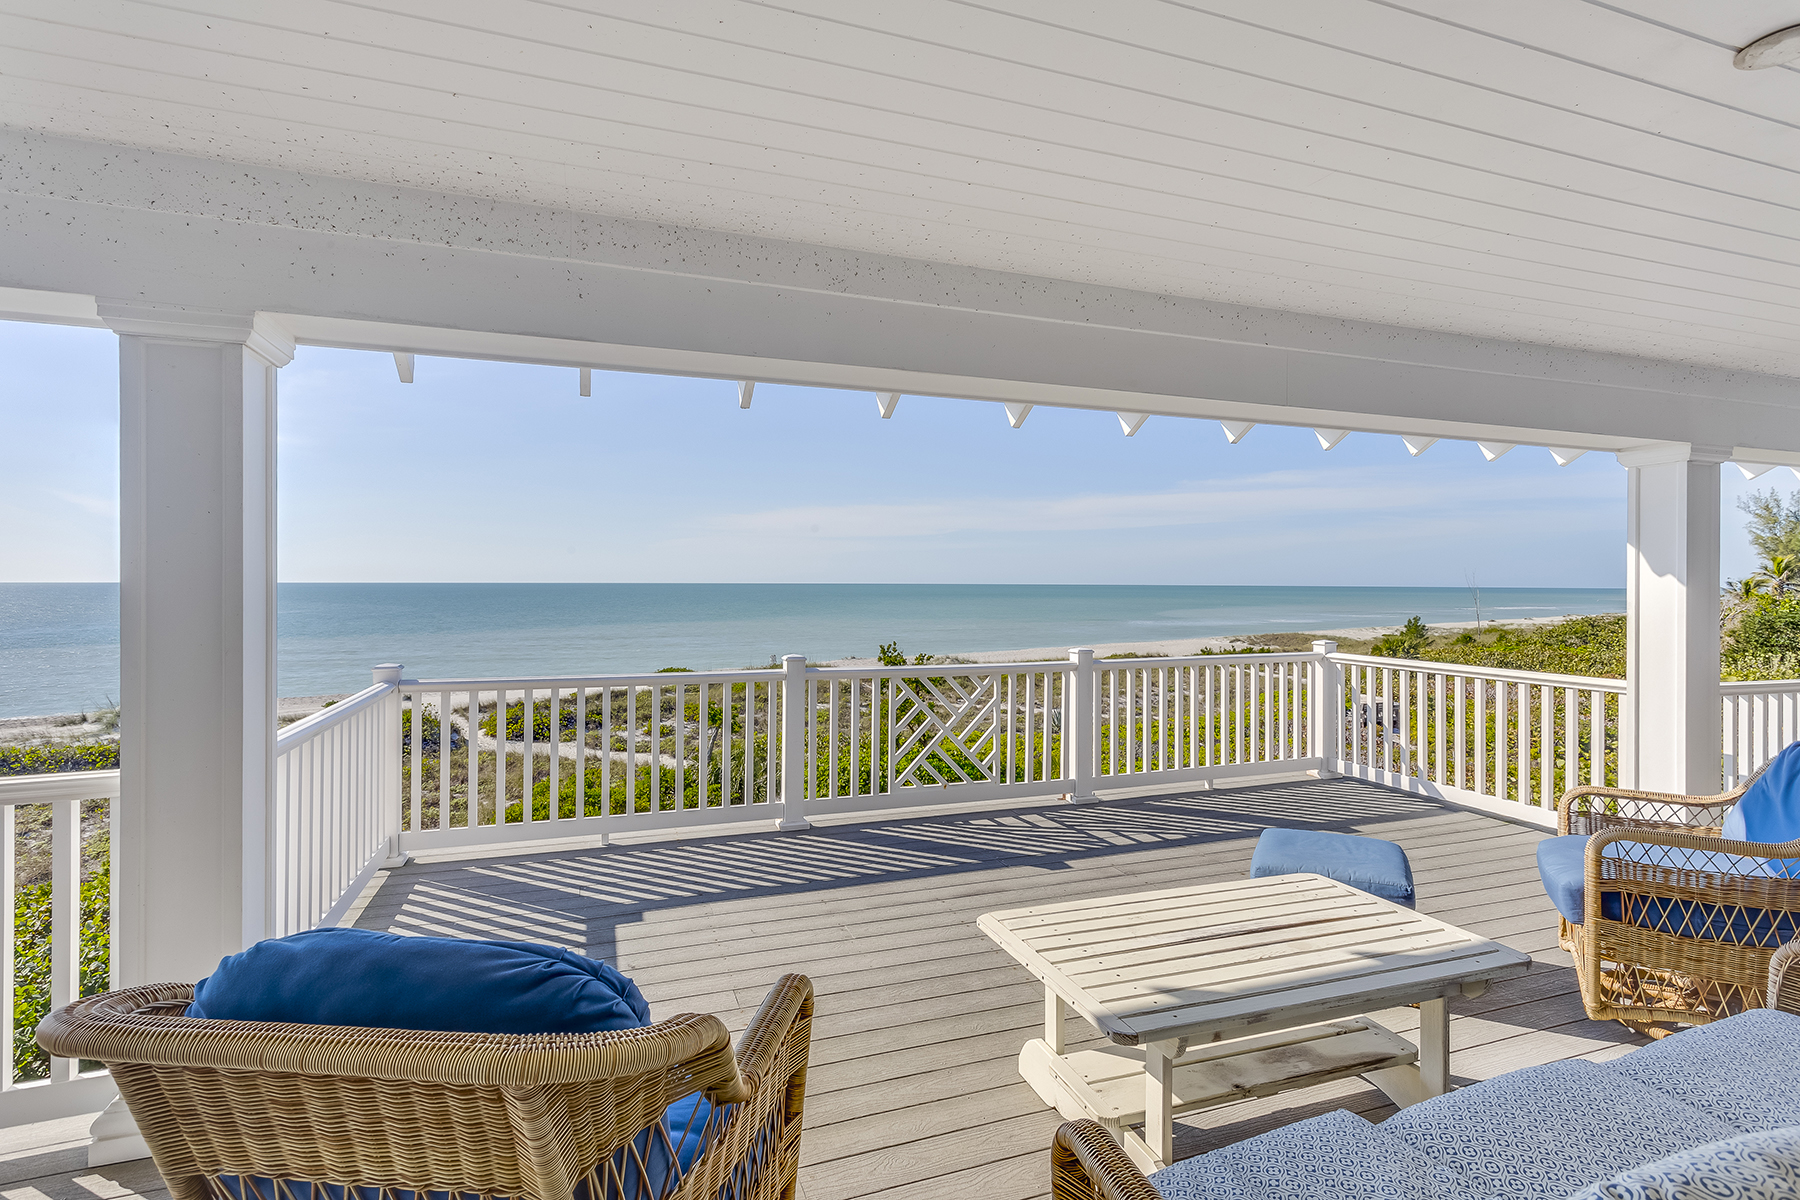 Additional photo for property listing at 17030 Captiva Dr , Captiva, FL 33924 17030  Captiva Dr,  Captiva, Florida 33924 United States